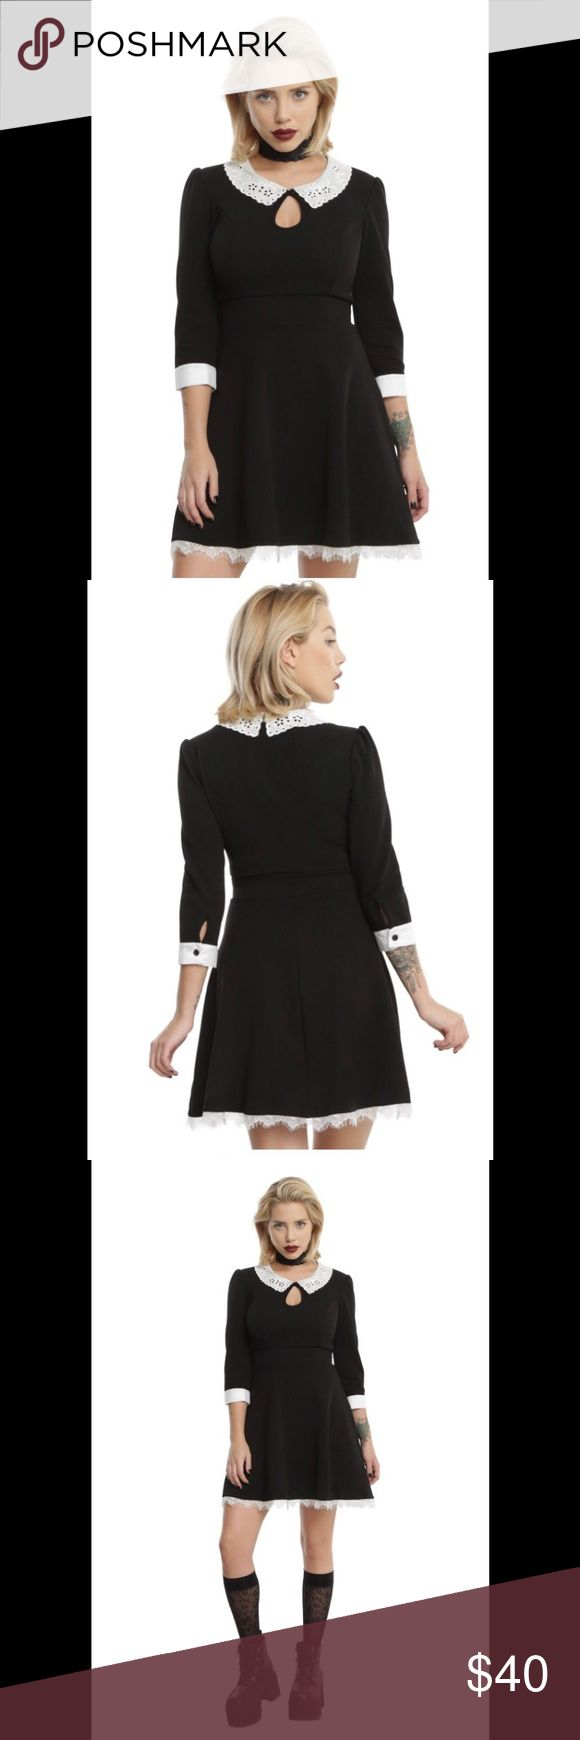 American Horror Story maid Hot Topic dress This dress is 96% polyester and 4% spandex. It hits about 3 inches above the knee. The material is pretty thick but has a lot of stretch and the dress comes in at the waist. Very figure flattering. The keyhole cutout is sexy but not too revealing. New with tags. Hot Topic Dresses